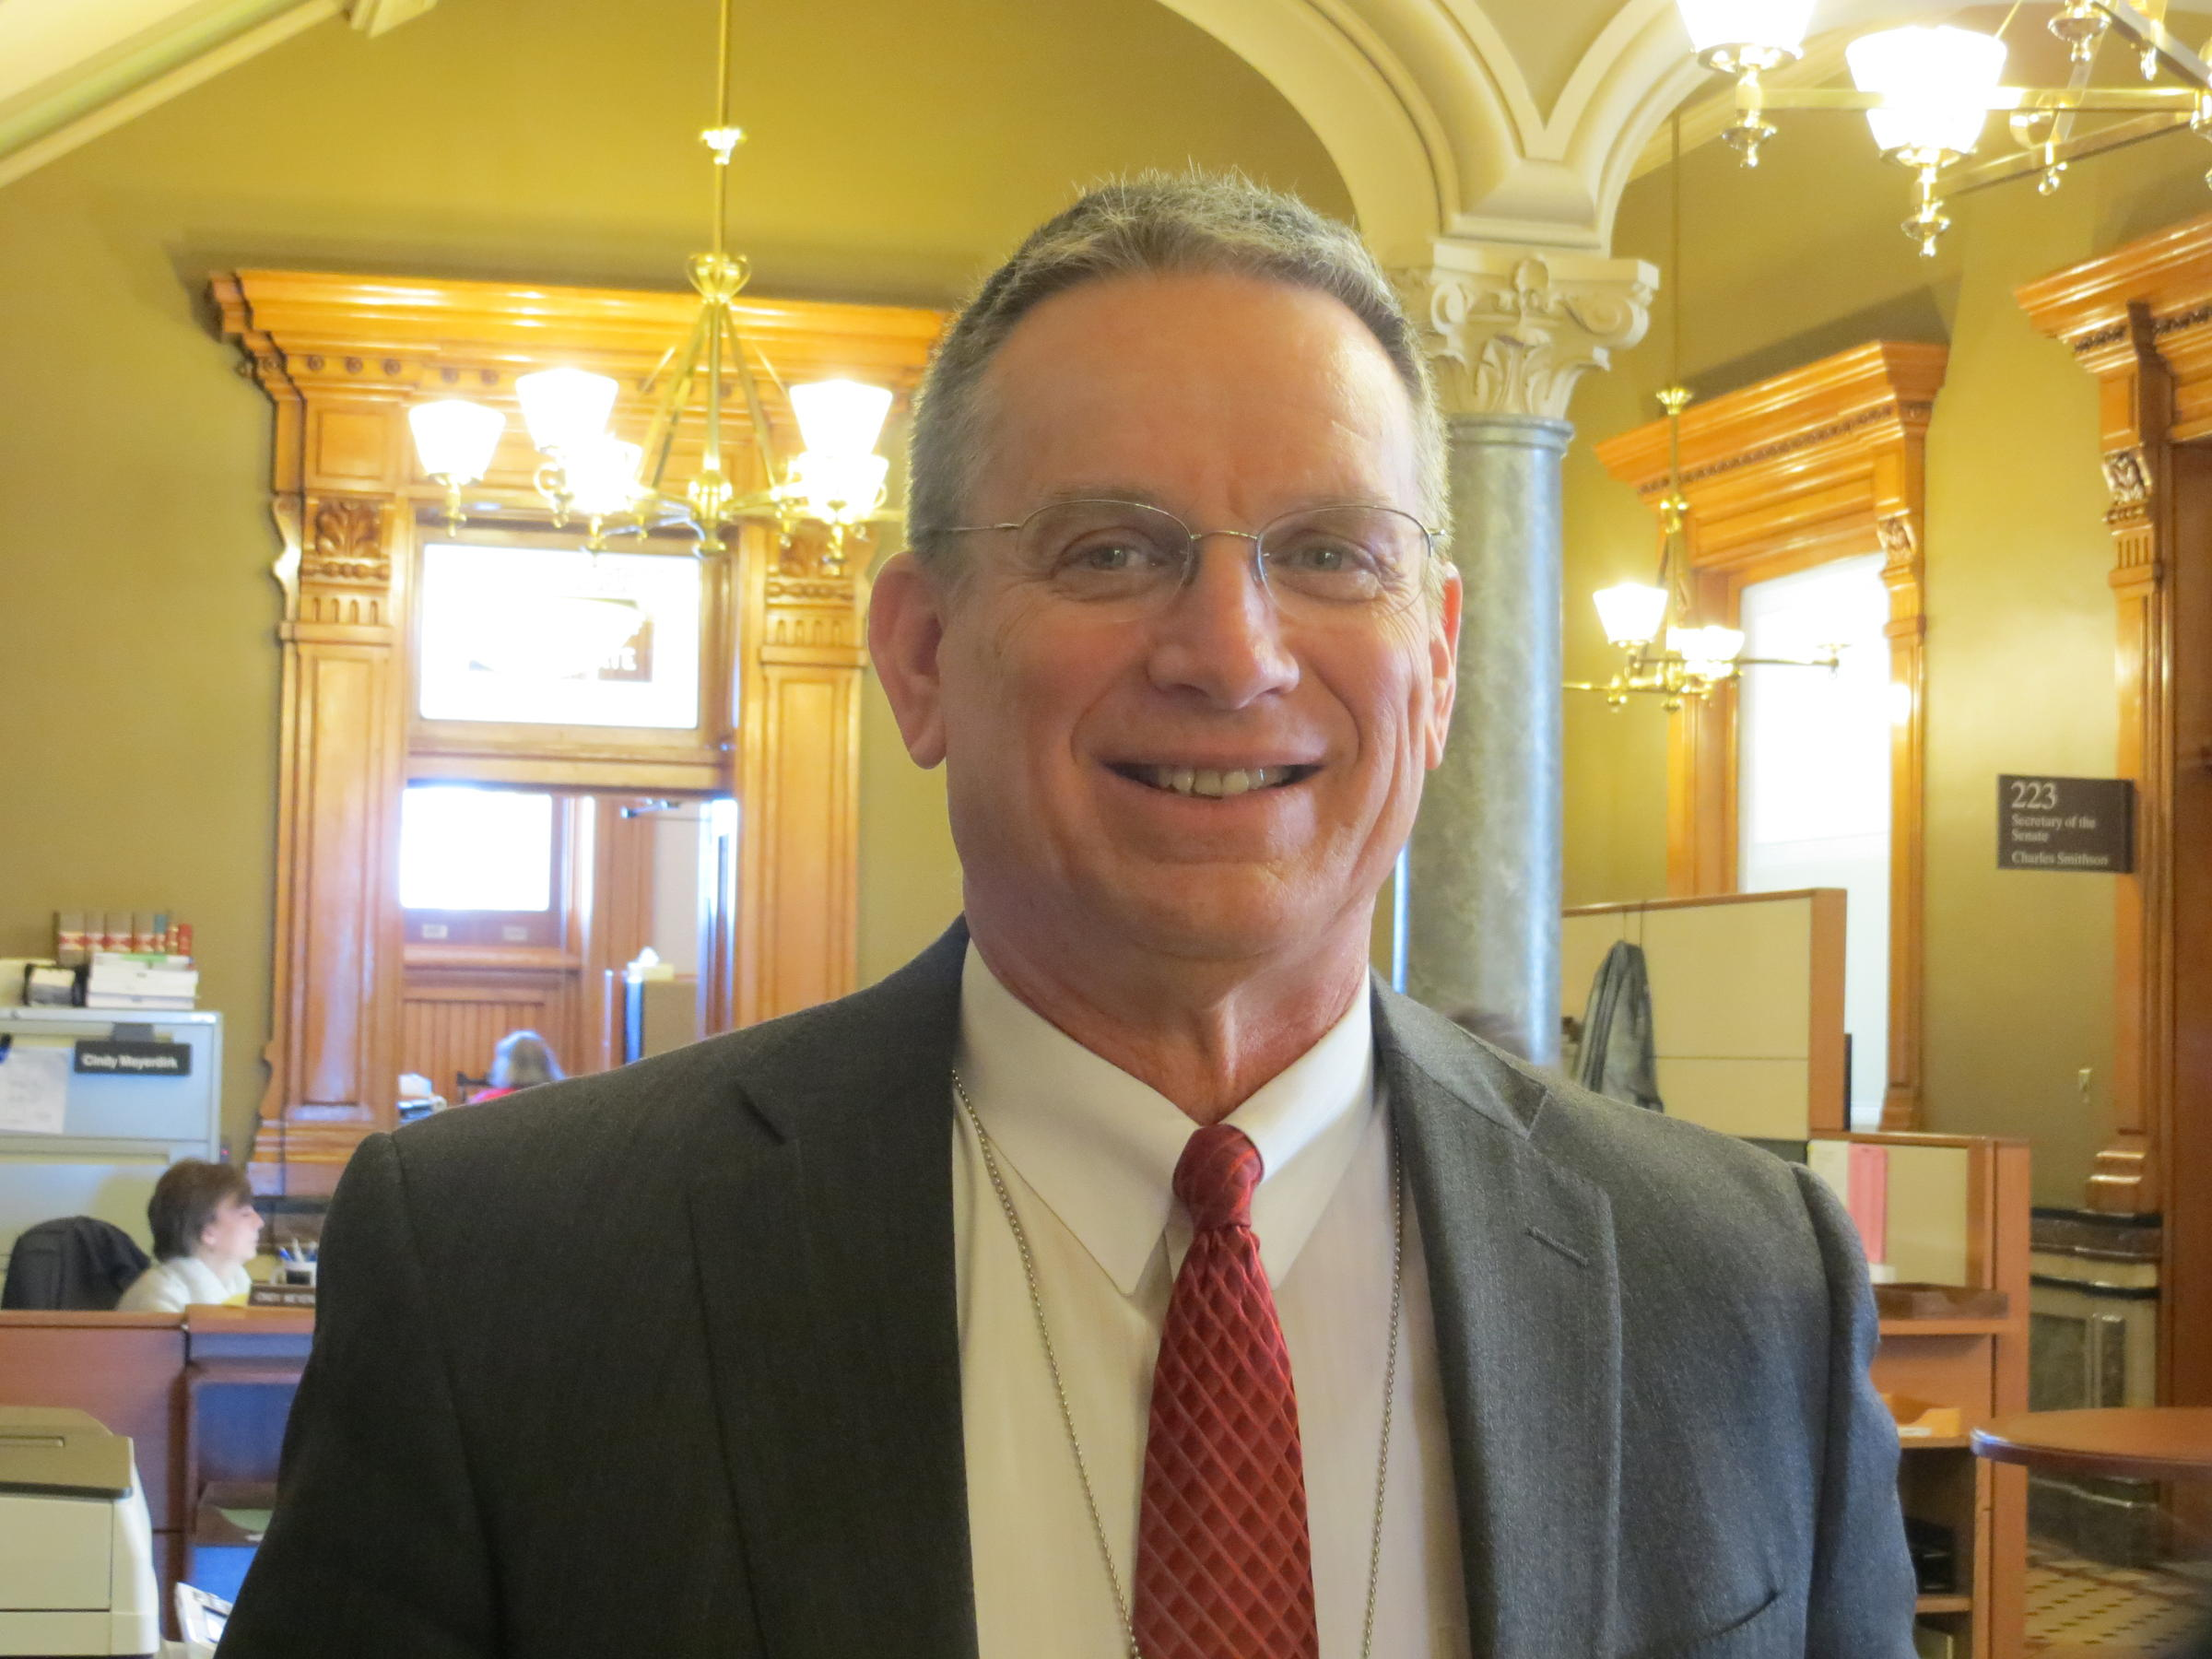 Iowa Senate Republicans Announce New Leadership After Bill Dix Resignation